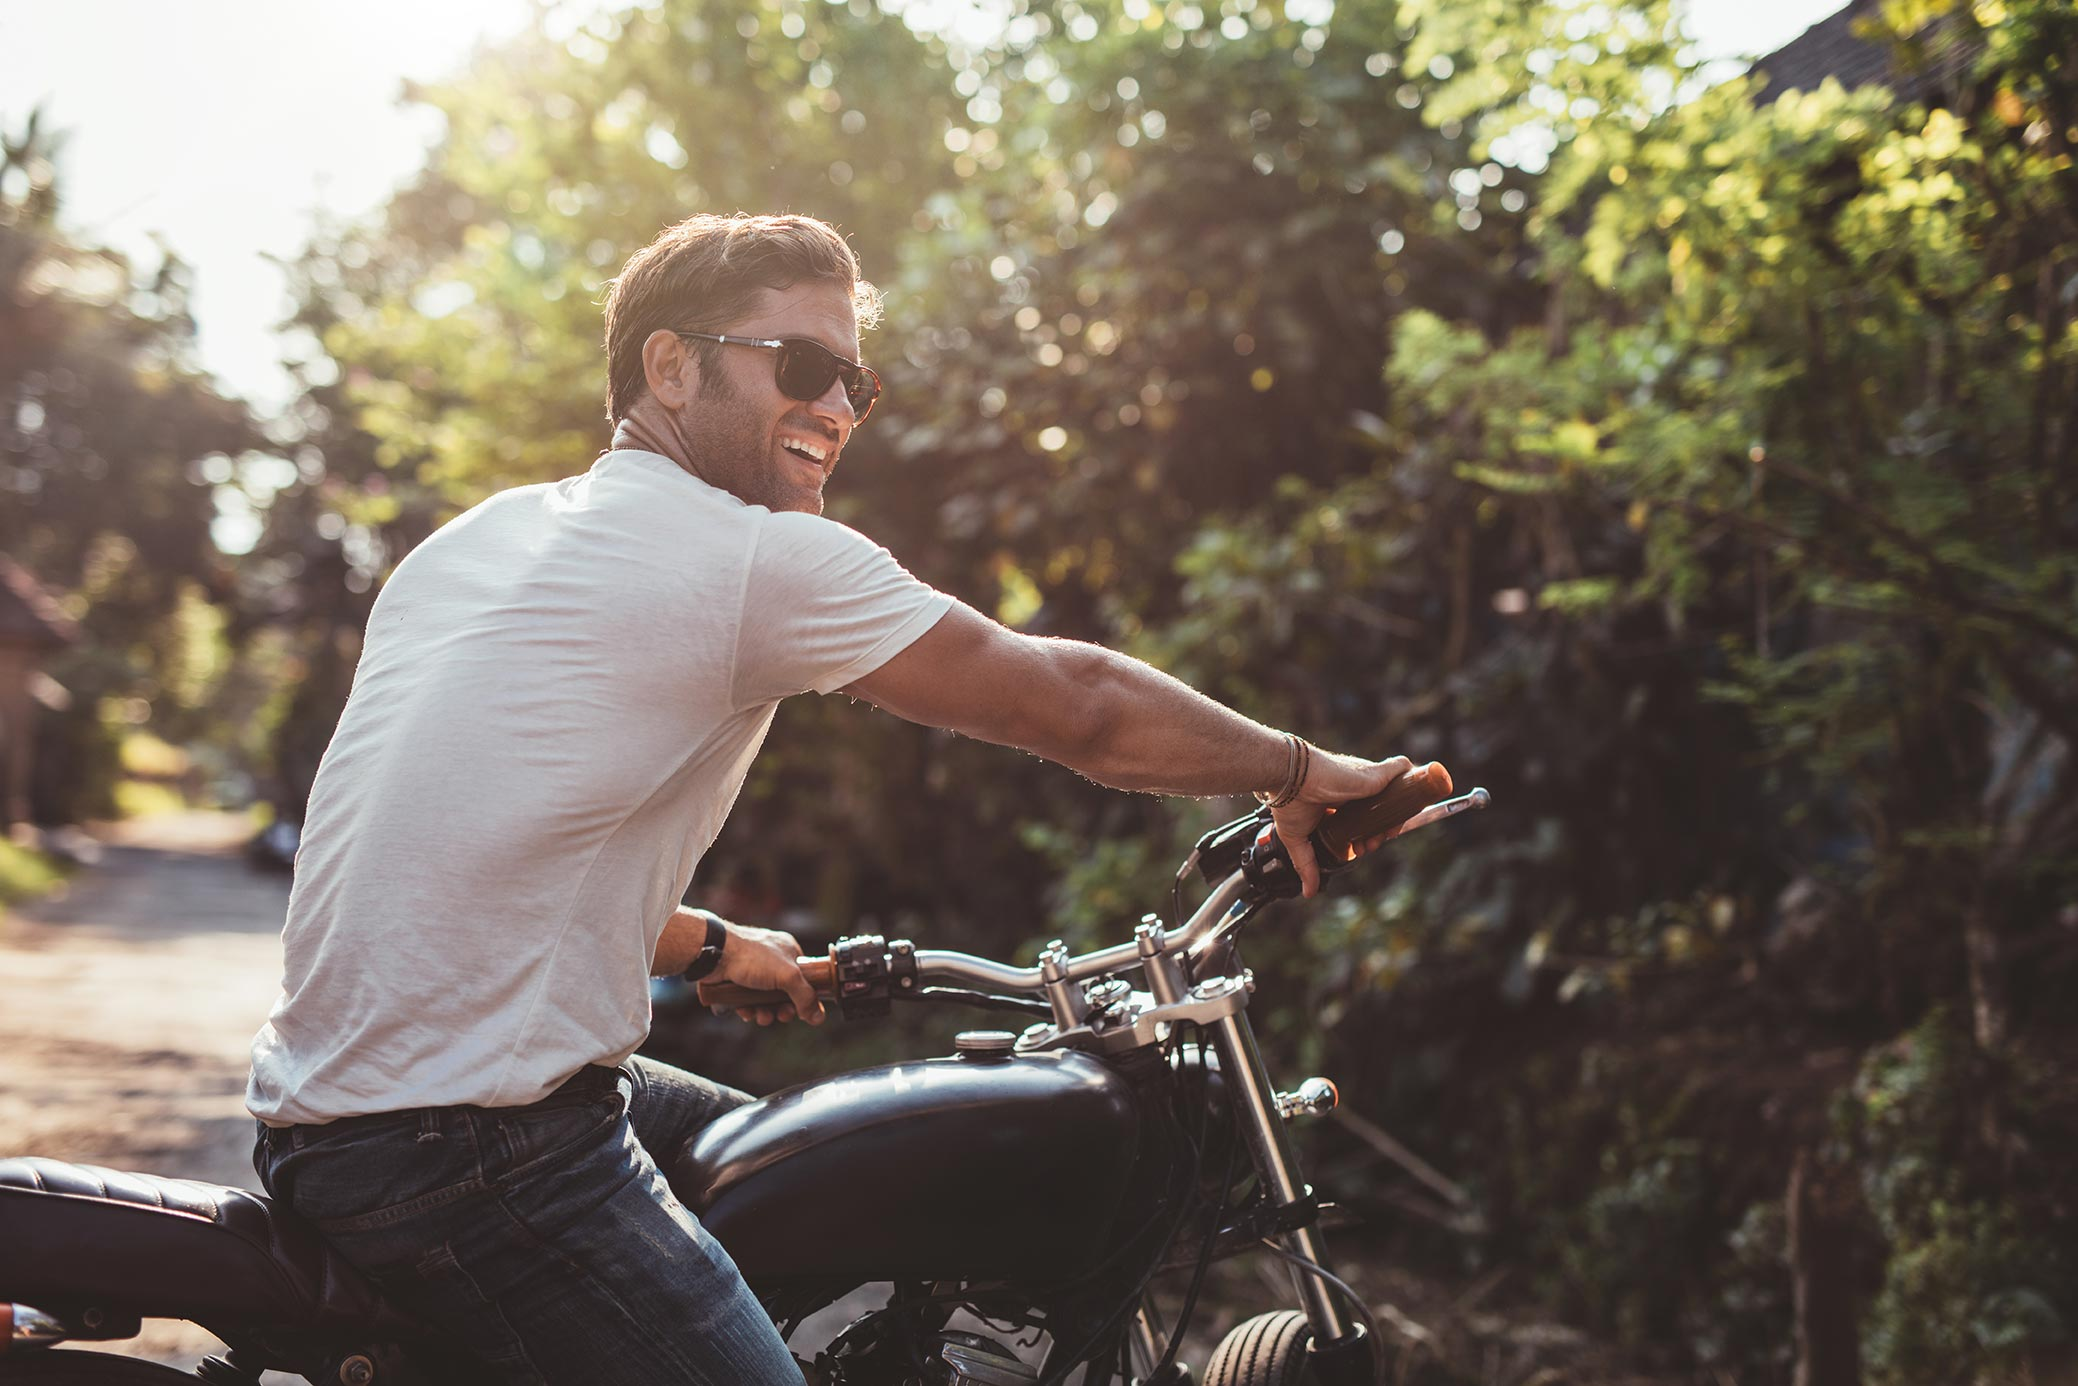 Motorcycle Loans From Red Crown Credit Union